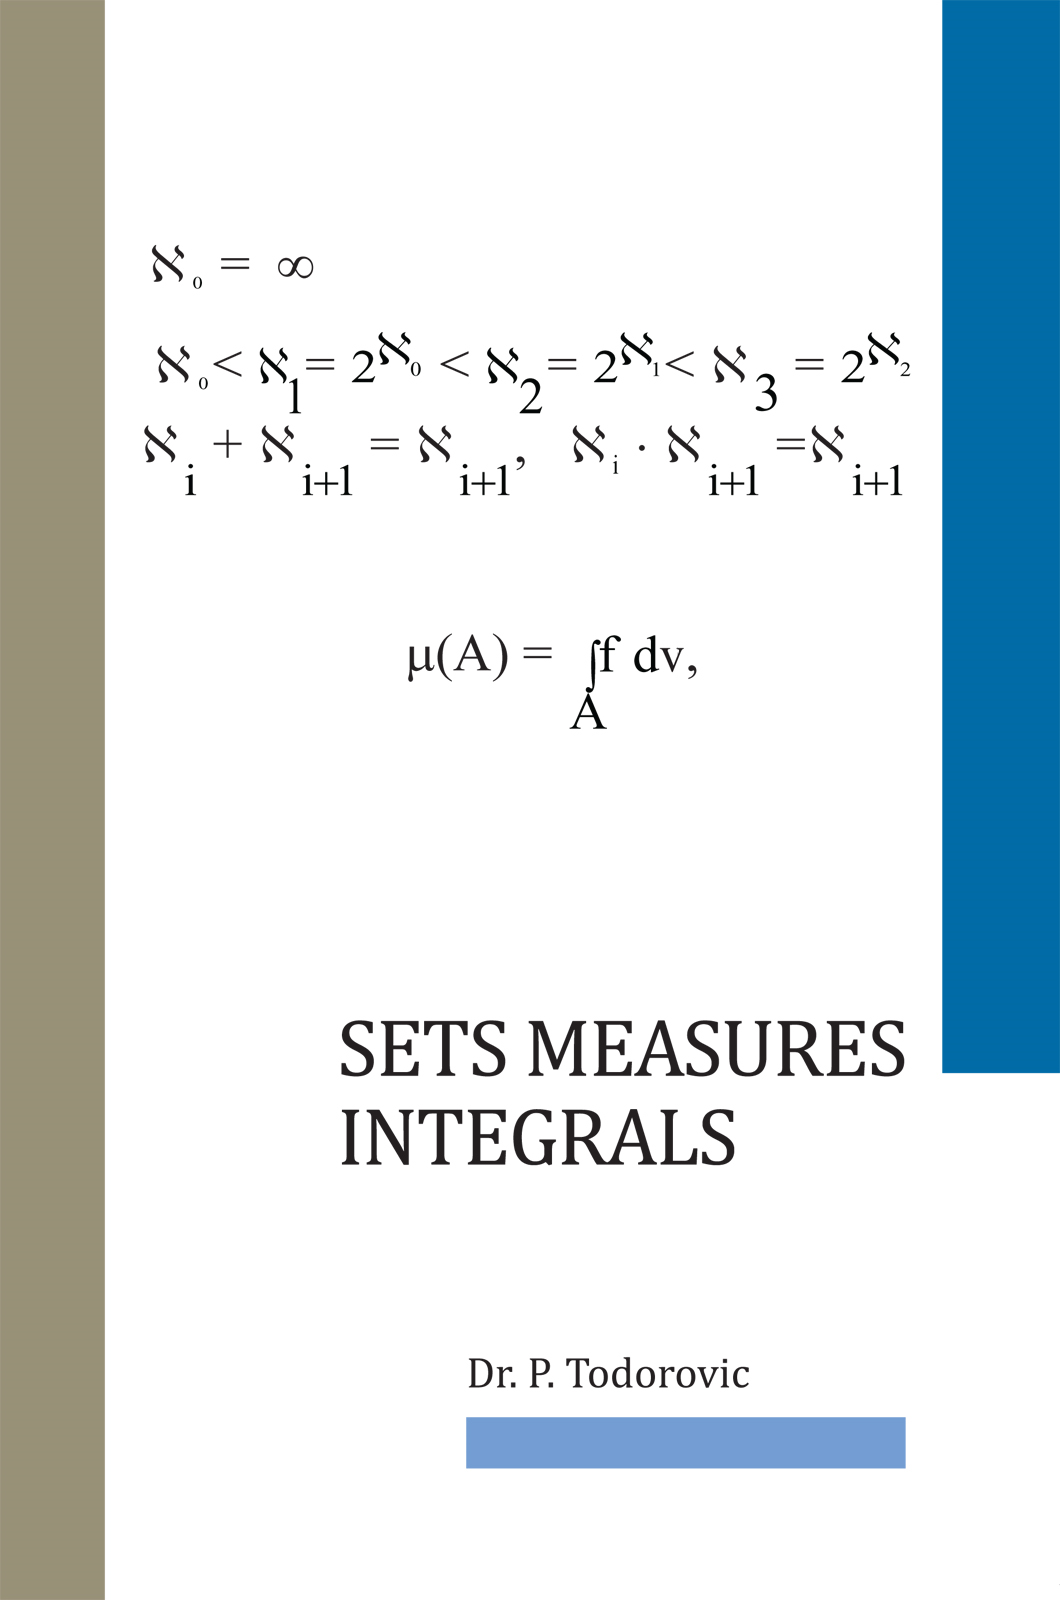 Sets Measures Integrals By: Dr. P. Todorovic